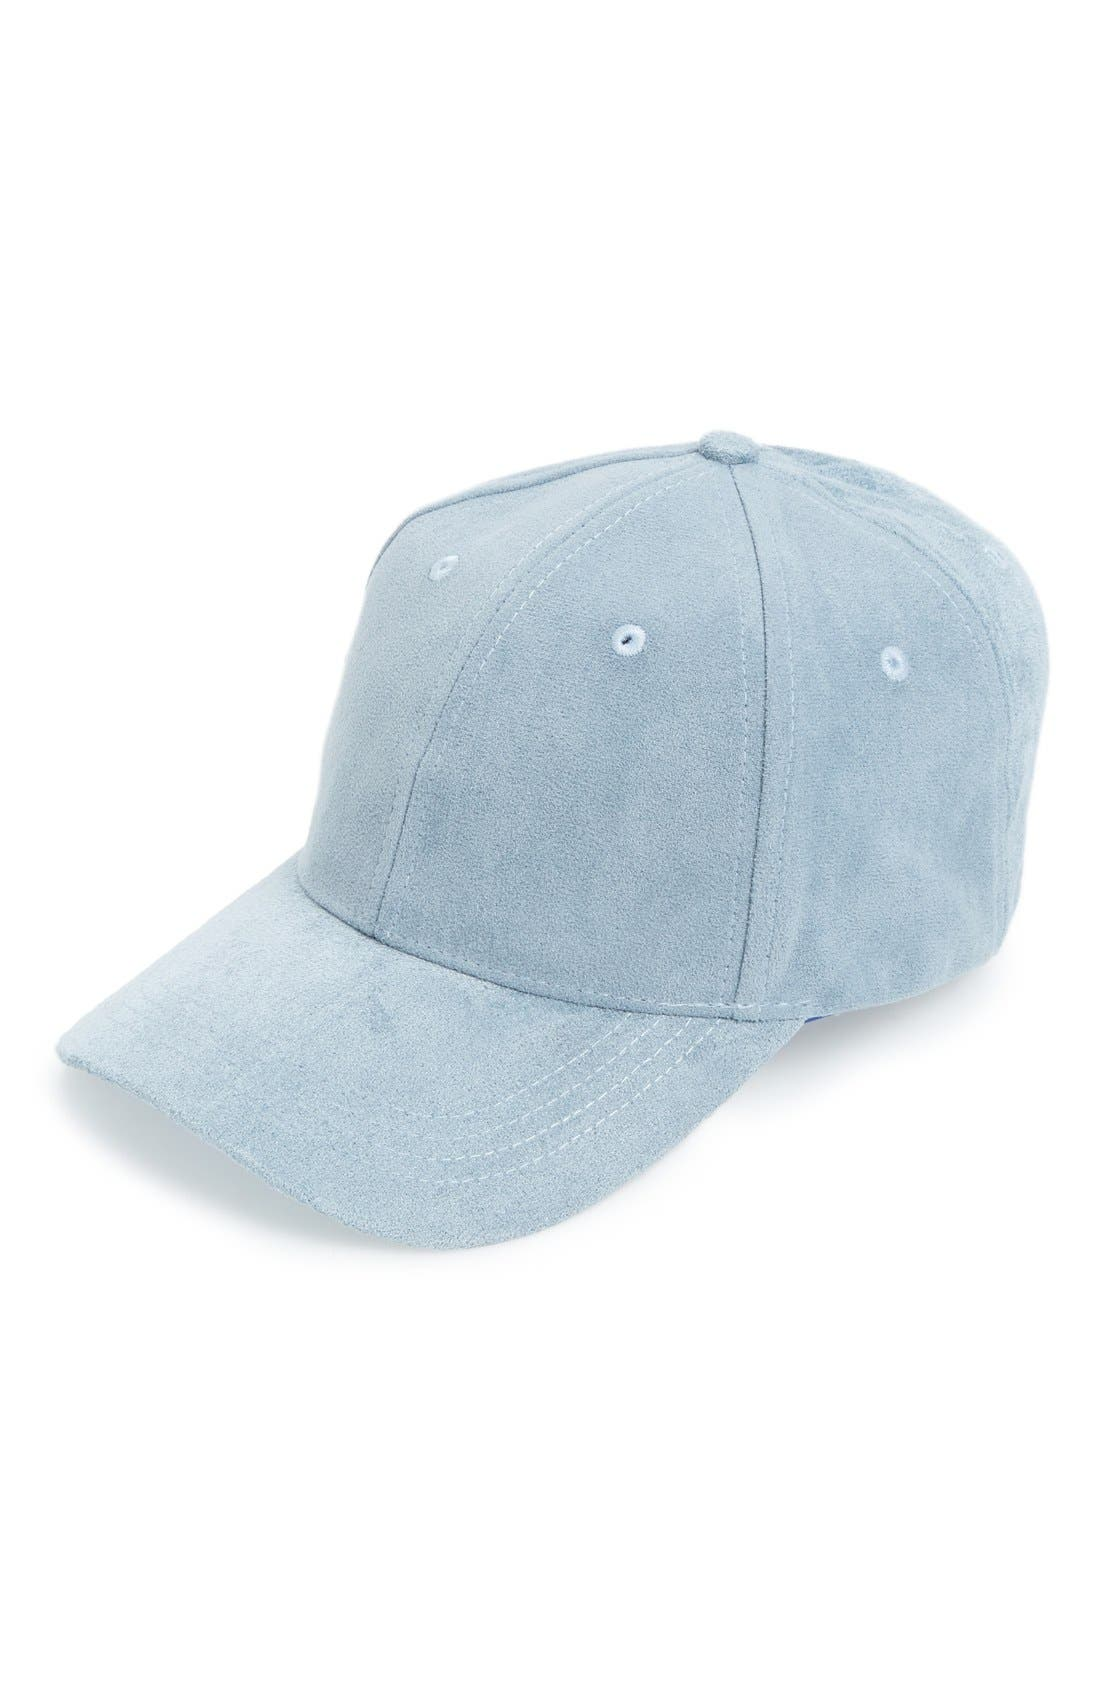 COLLECTION XIIX Baseball Cap